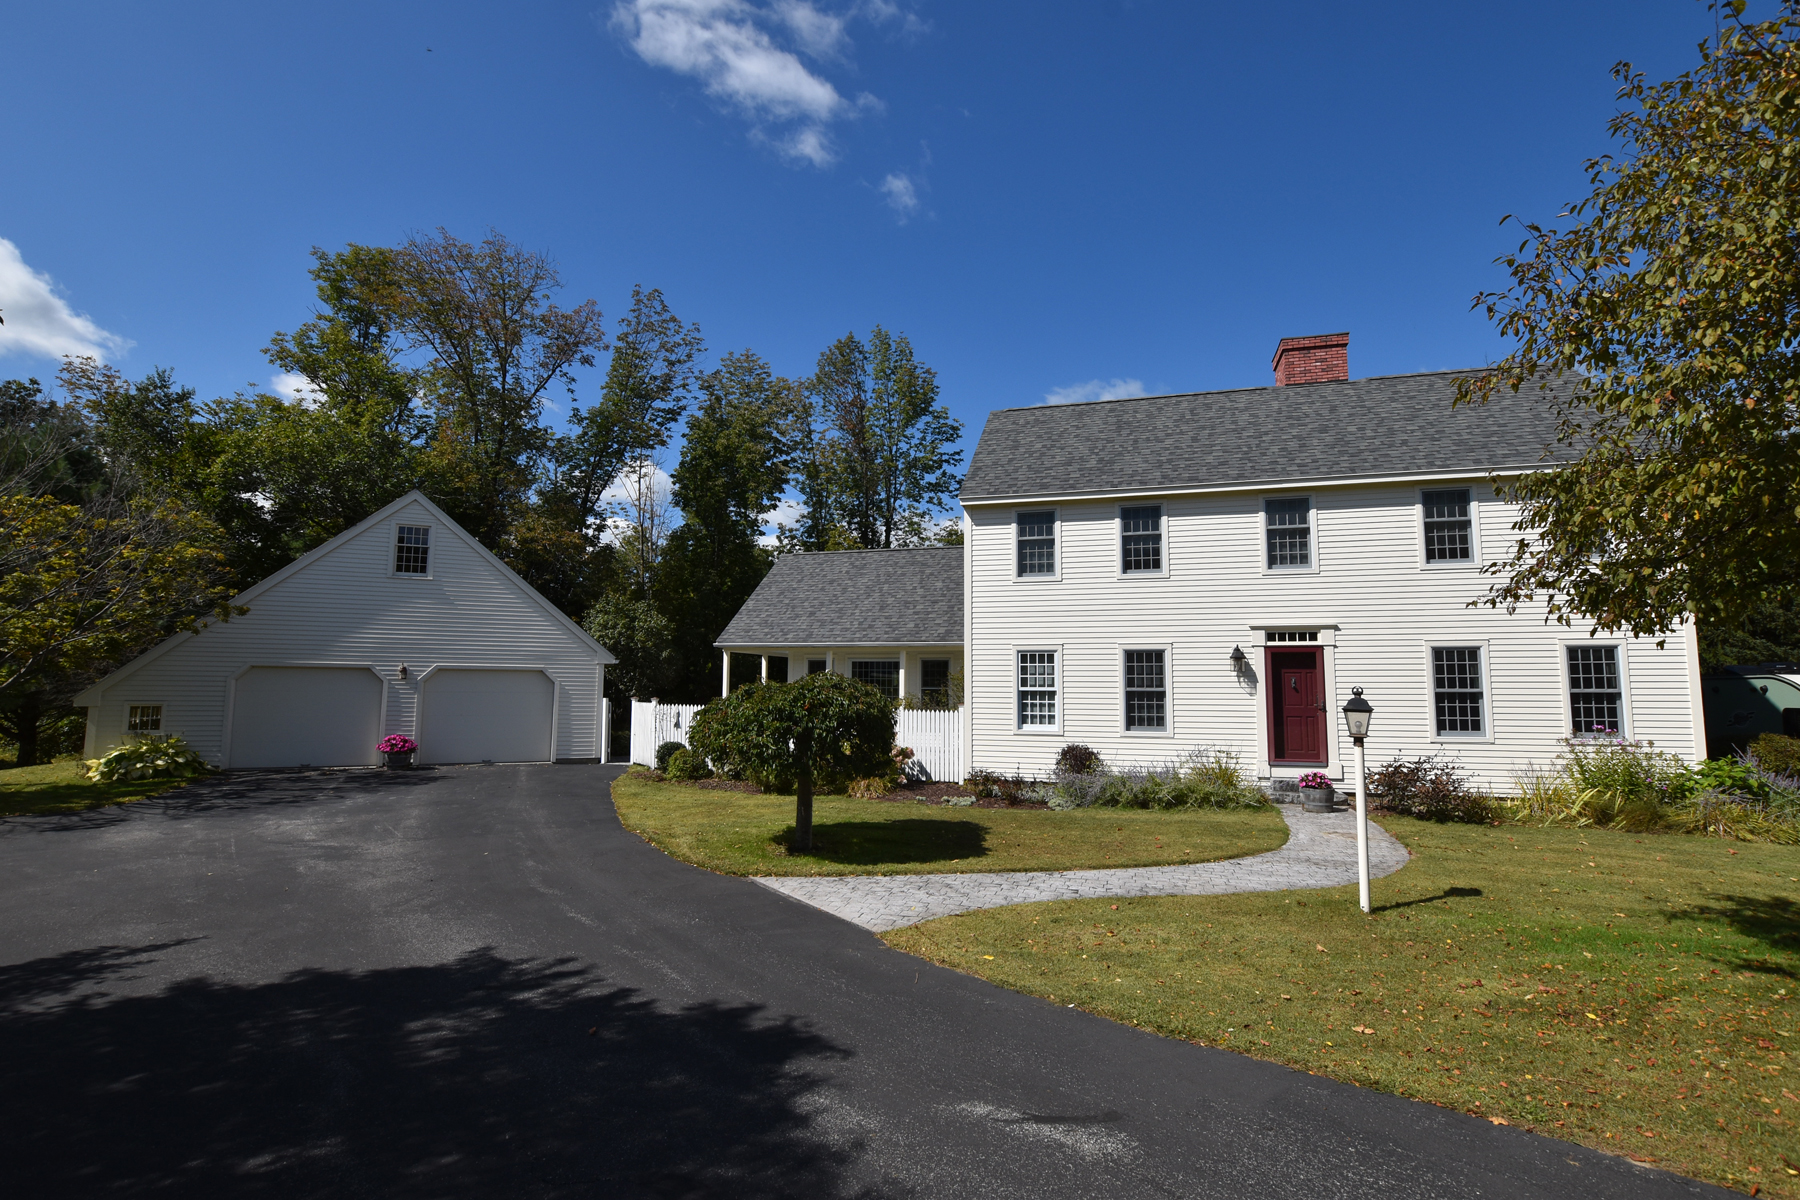 Single Family Homes for Sale at HOME SWEET HOME-HANDSOME COLONIAL-.62 ACRE 1 Sherwood Rd Rutland, Vermont 05701 United States